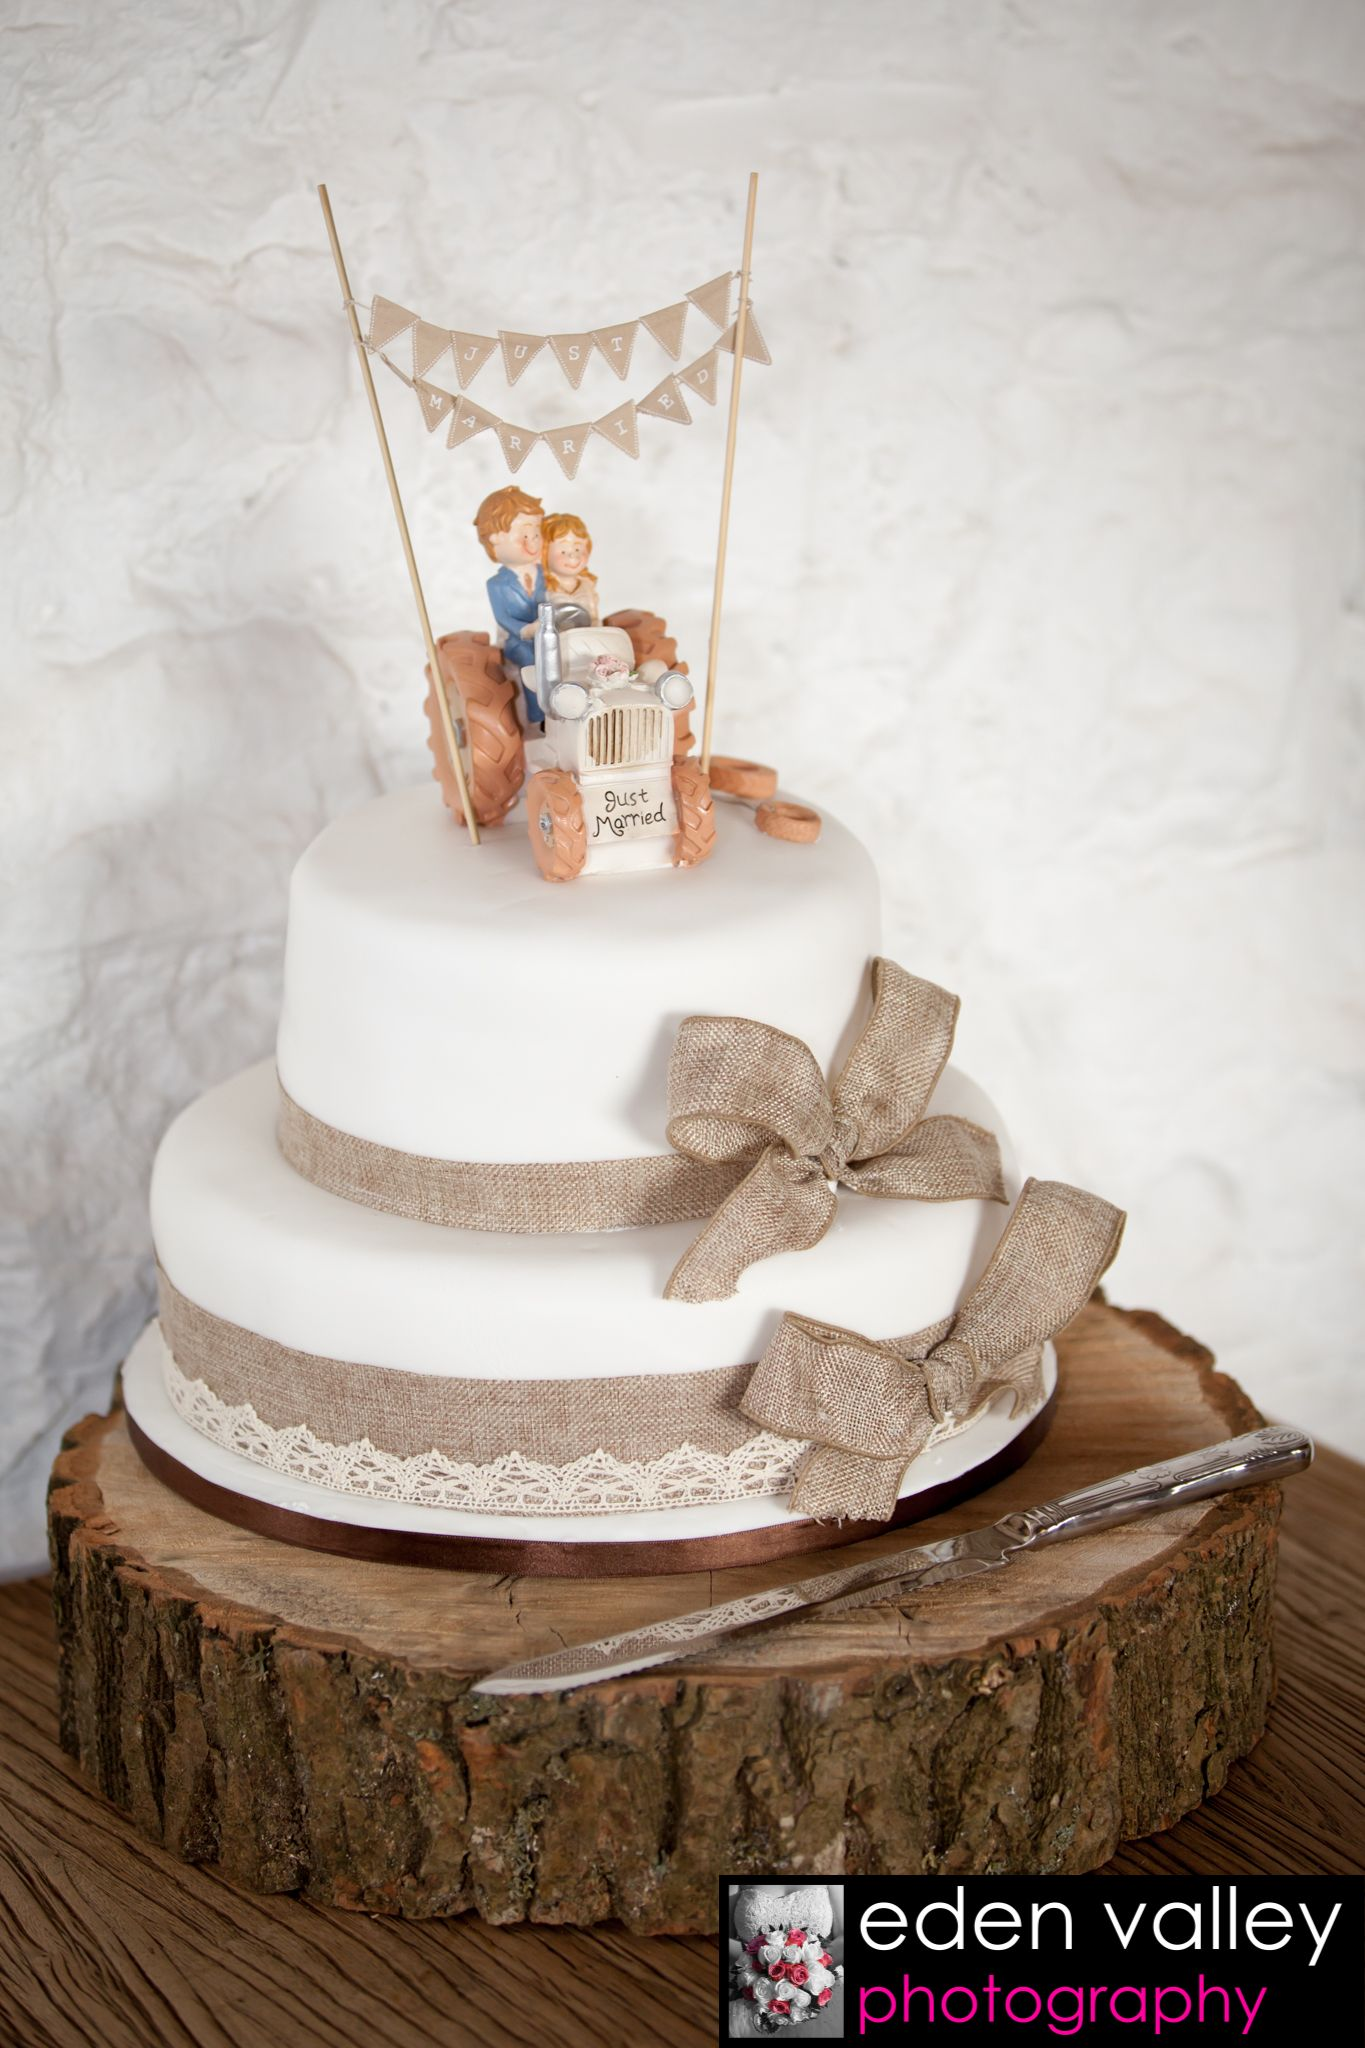 Good Wedding Cake Ideas, Shabby Chic, Rustic Wedding, Farmer Wedding Cake,  Tractor Wedding Cake